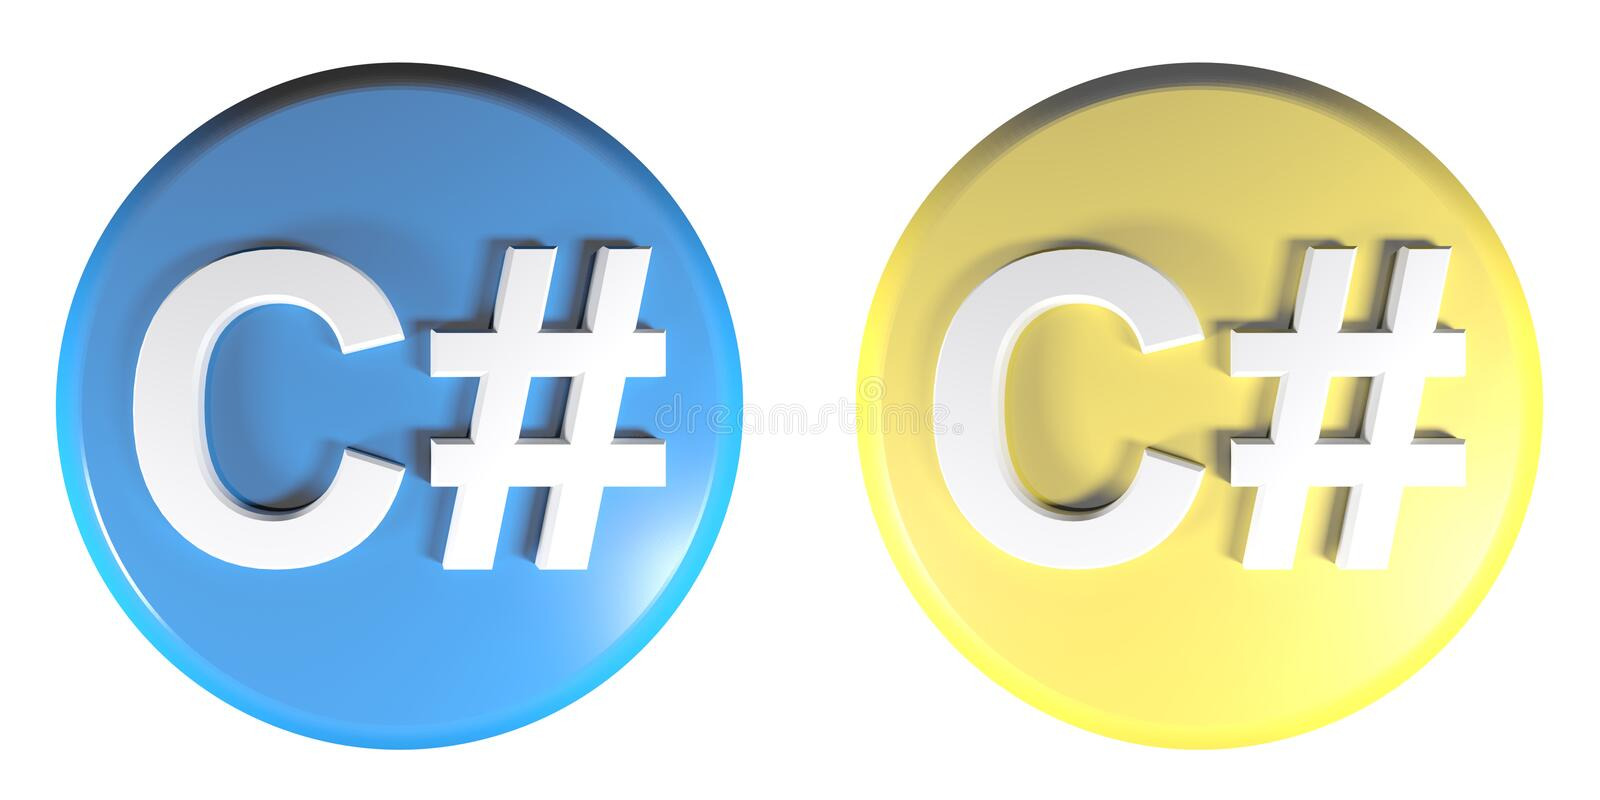 C# blue and yellow circle push buttons - 3D rendering illustration. Two circle push buttons, blue and yellow, isolated on white background, with the write C# stock illustration